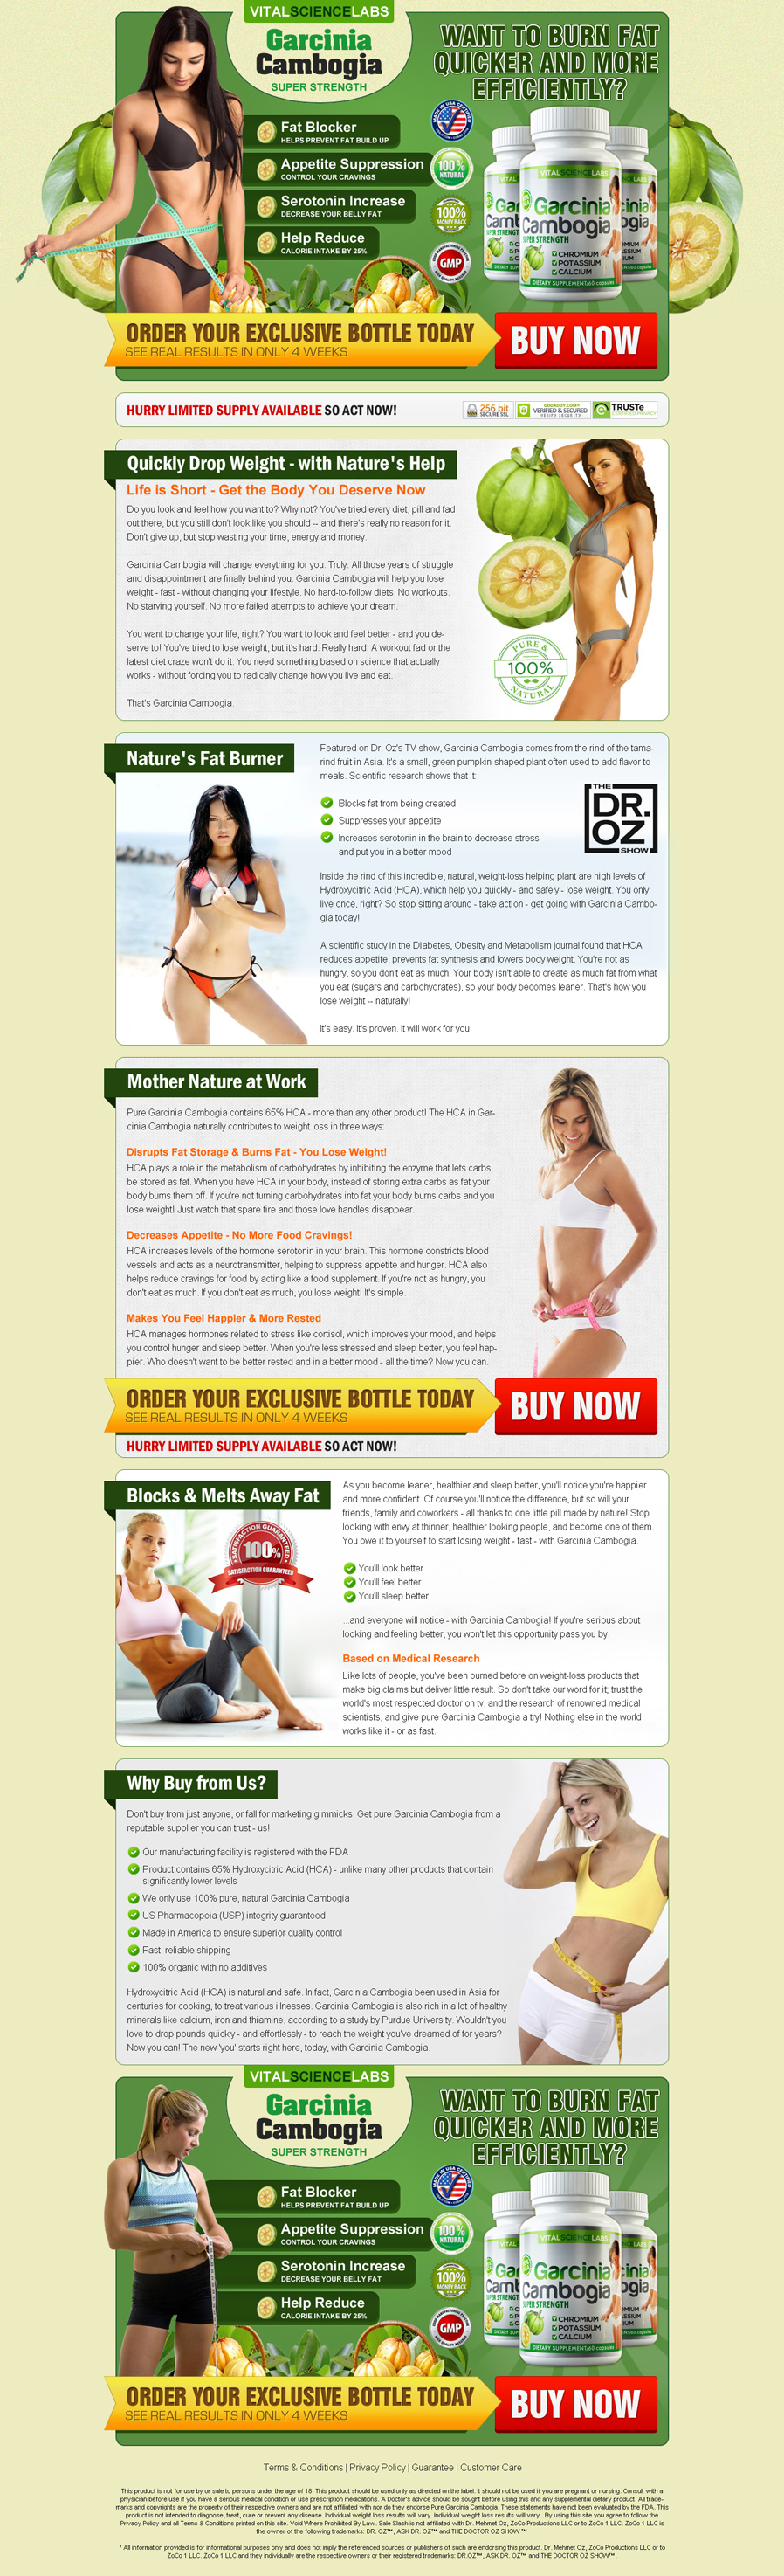 garcinia cambogia buy now